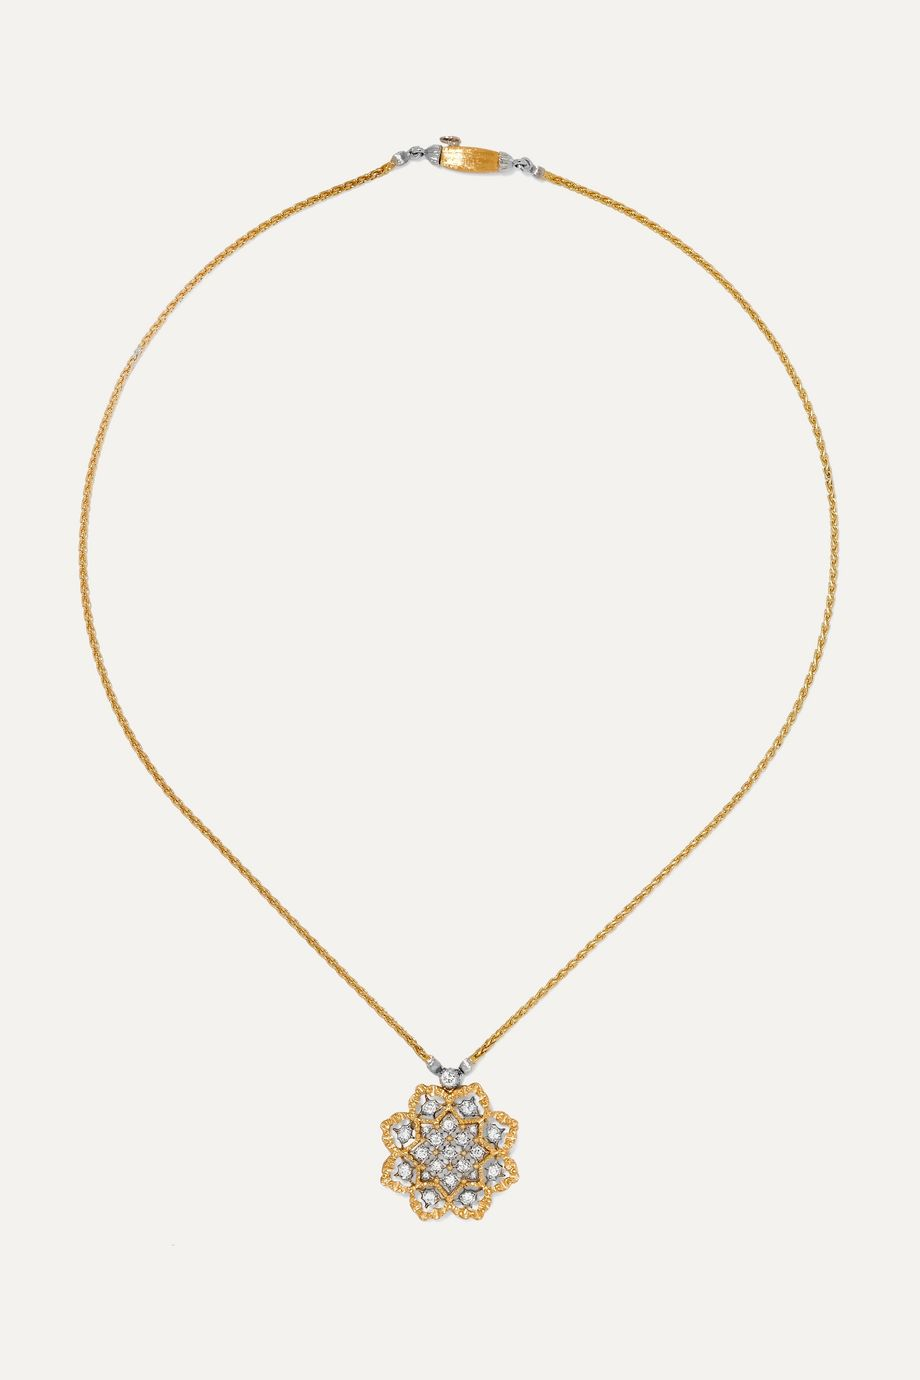 Buccellati Rombi 18-karat yellow and white gold diamond necklace